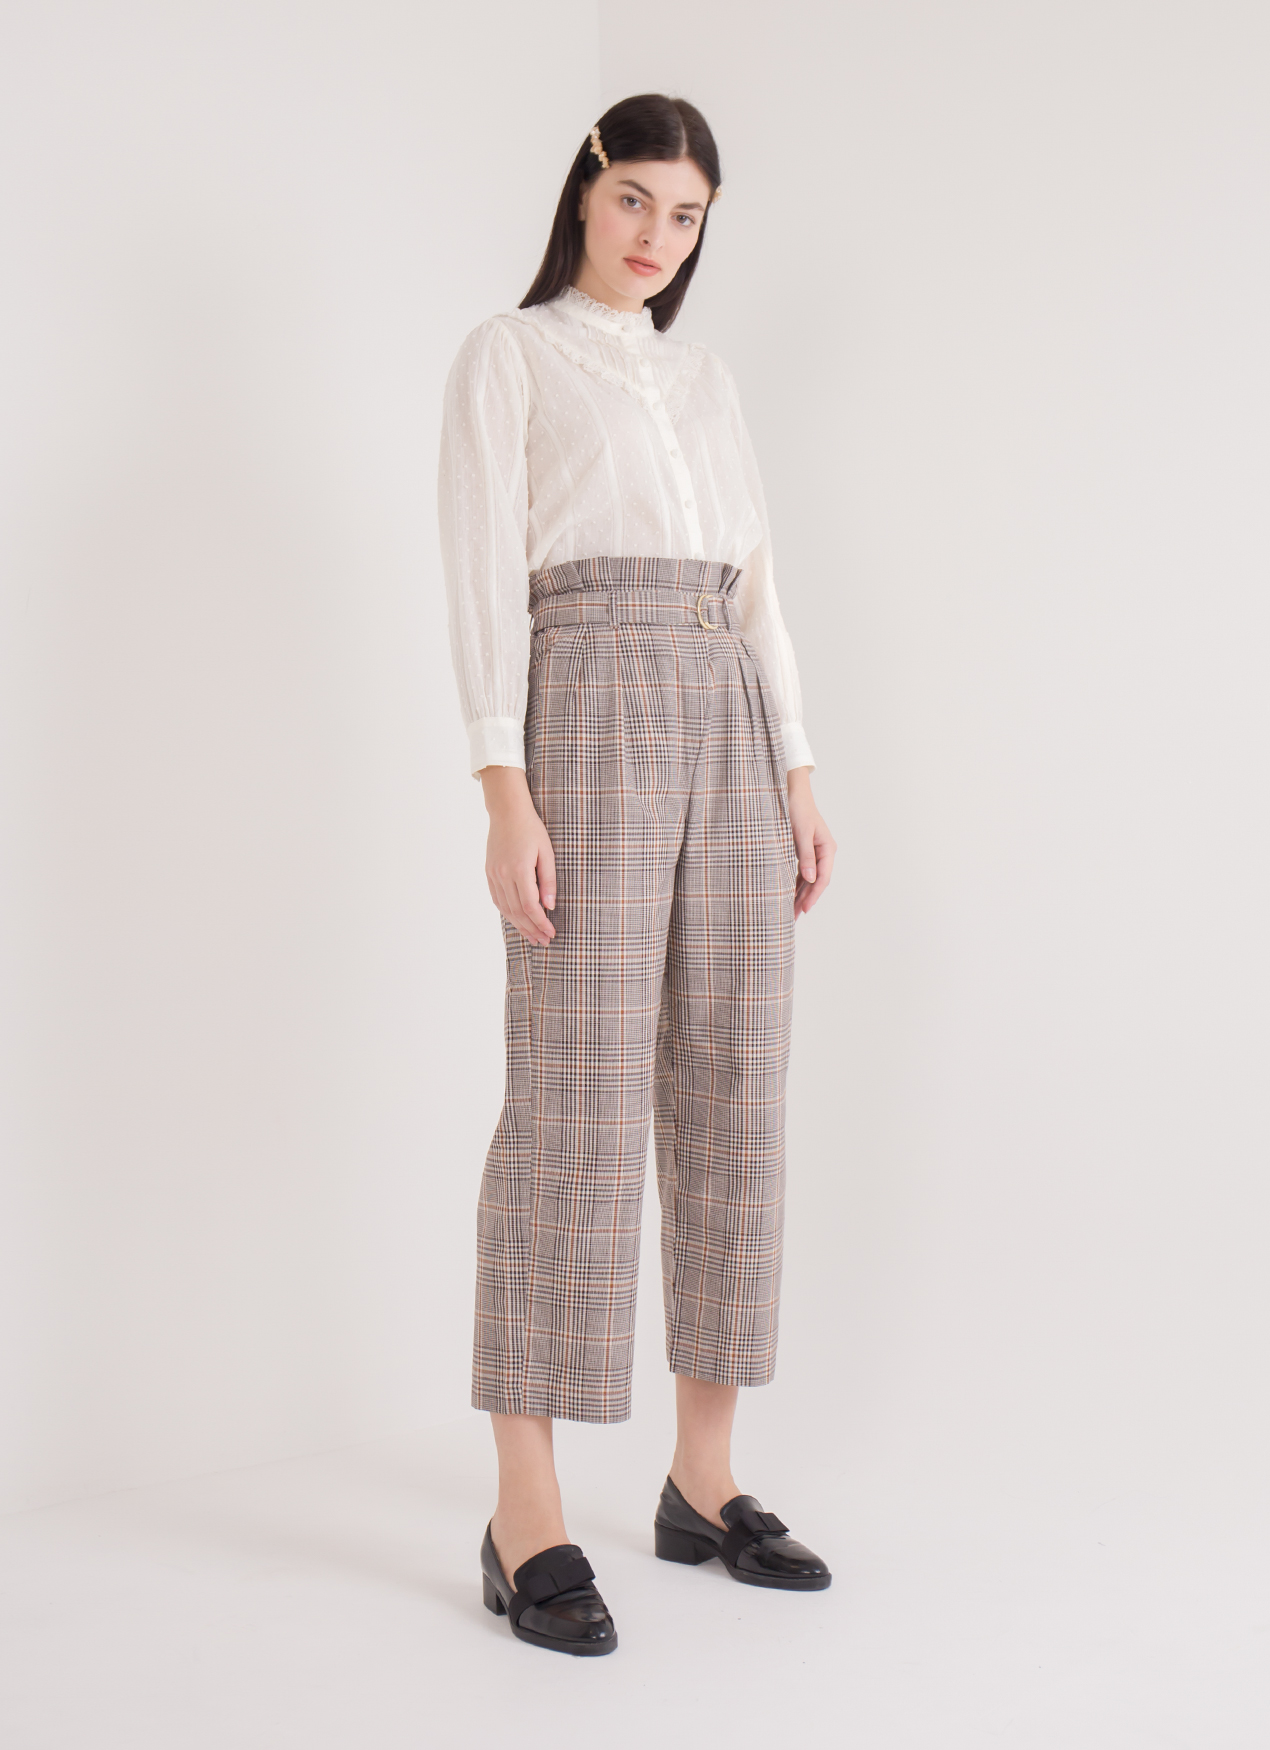 American Holic Regina Pants - Check Brown